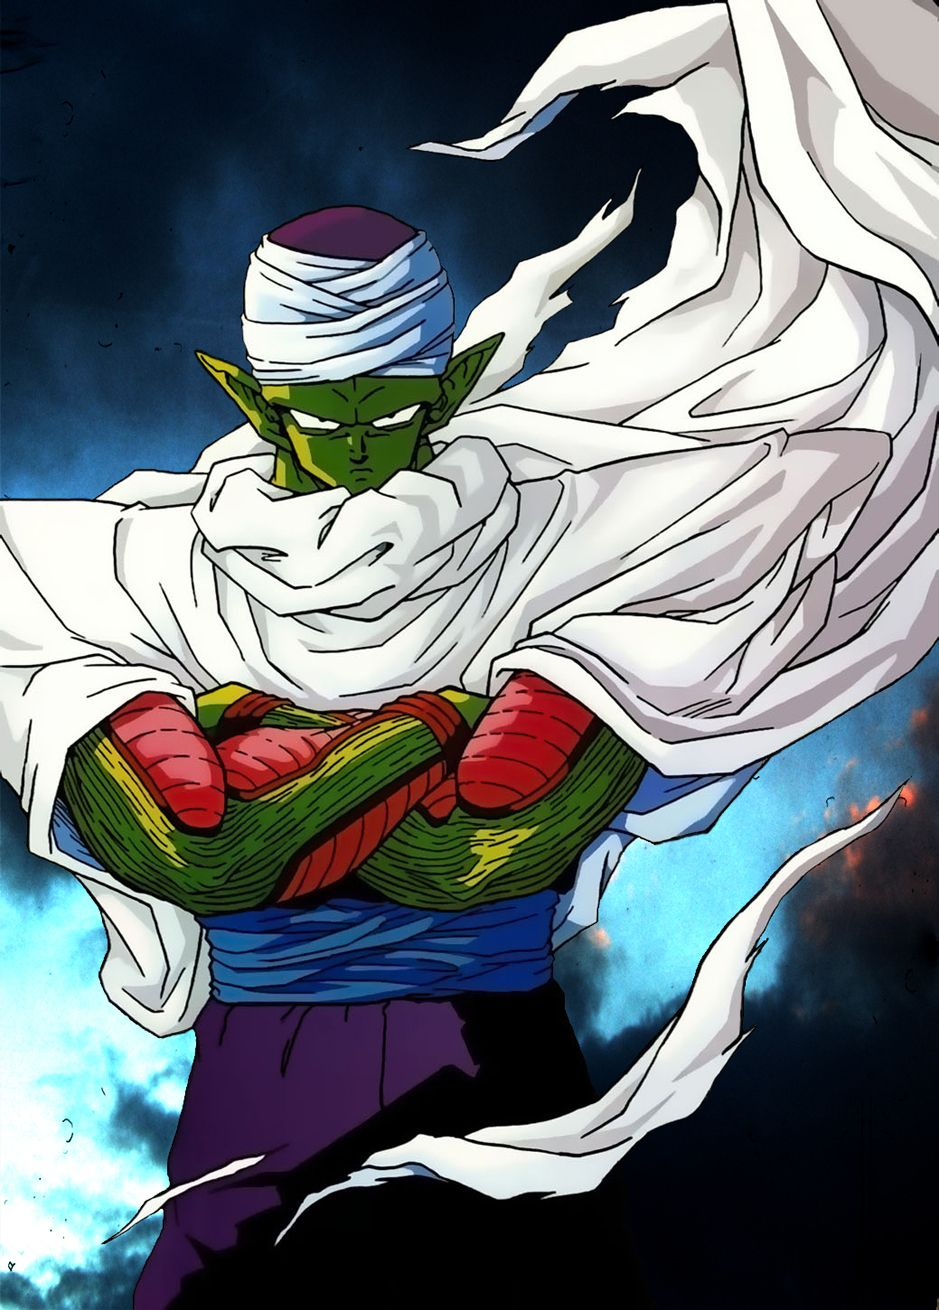 Piccolo is my second favorite character in the series. he is also the smartest character in the show compared to the rest of the fighters.